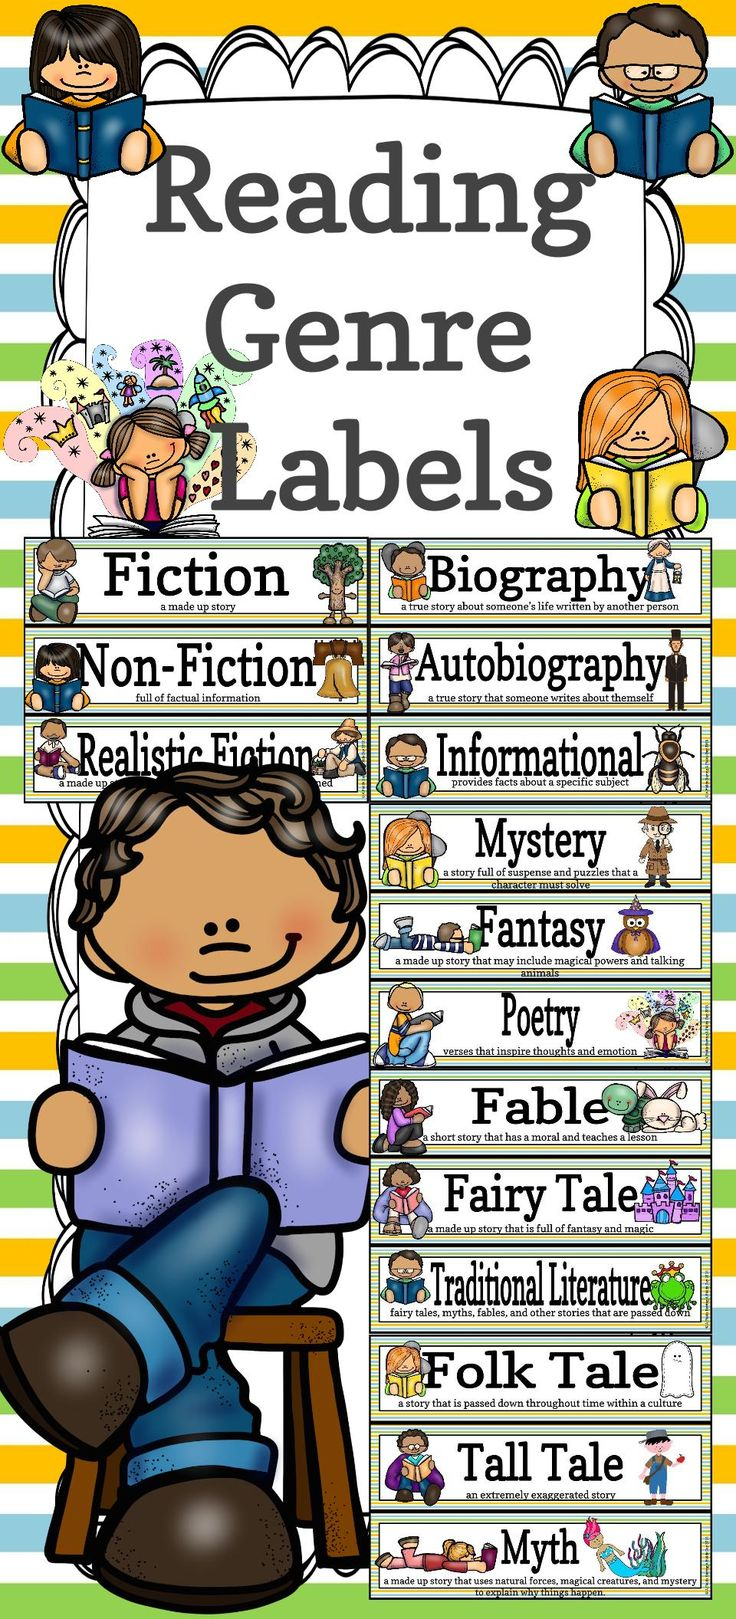 These 21 reading genre labels are great for library and classroom organization! Use on shelves, book bins, or even as decor! https://www.teacherspayteachers.com/Product/Reading-Genre-Labels-1910351 #backtoschool